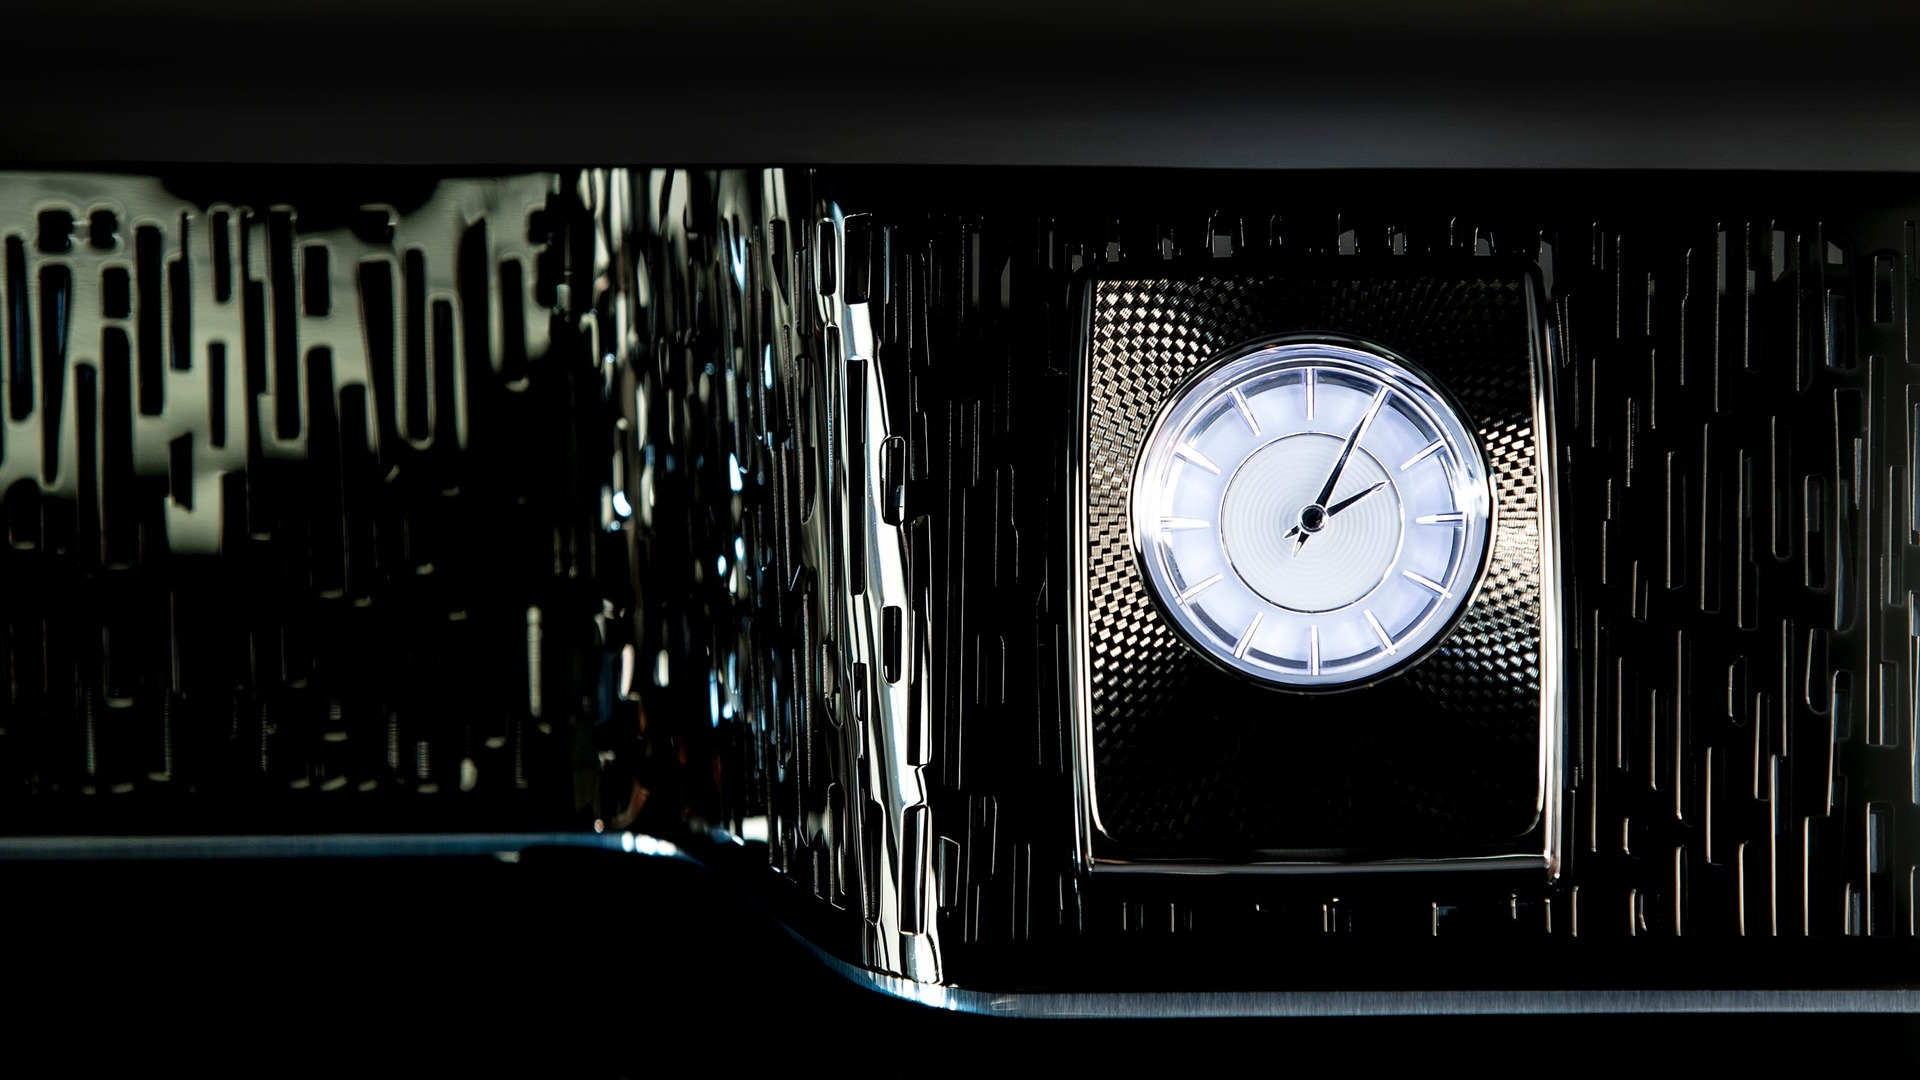 Clock from gentleman's tourer Rolls-Royce Phantom standard wheelbase